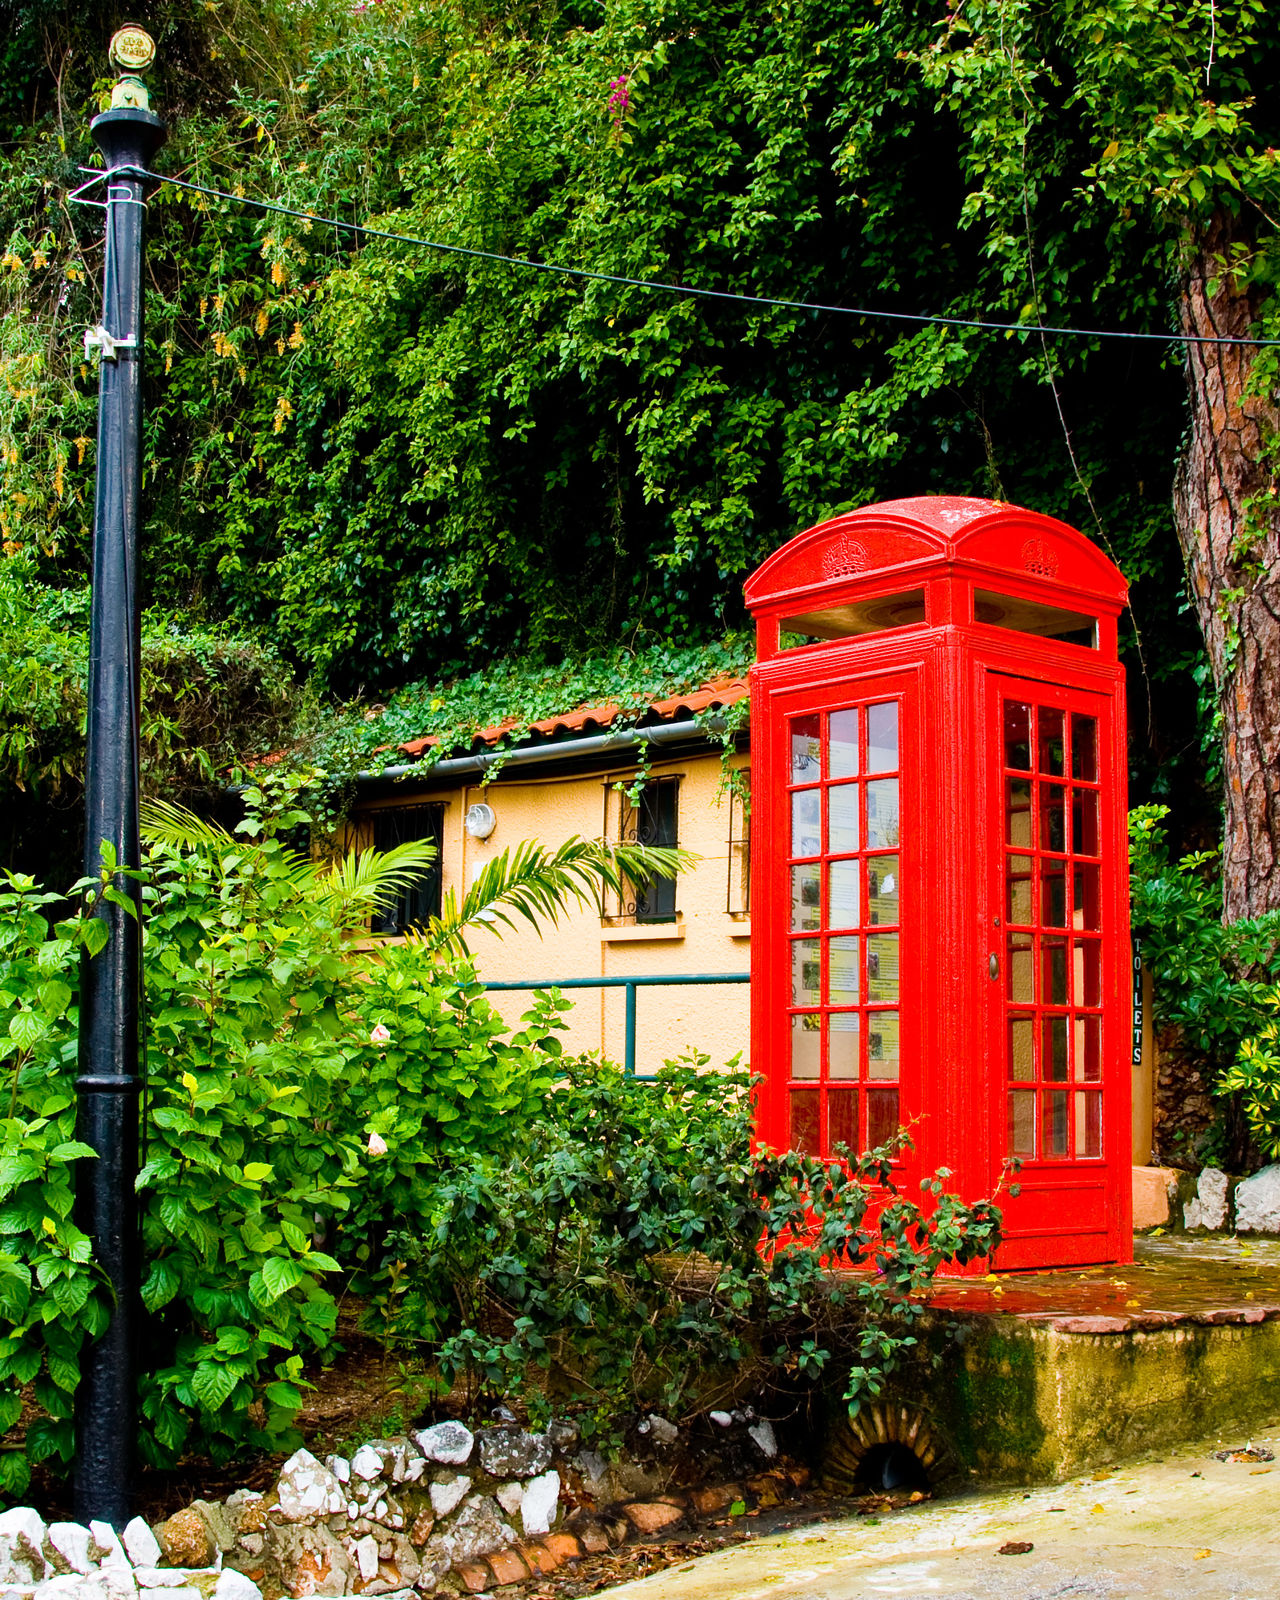 Architecture Built Structure Day Garden Gibraltar Green Color Growth Nature No People Outdoors Red Red Phone Box Red Phone Boxes Red Telephone Box Telephone Booth Tree